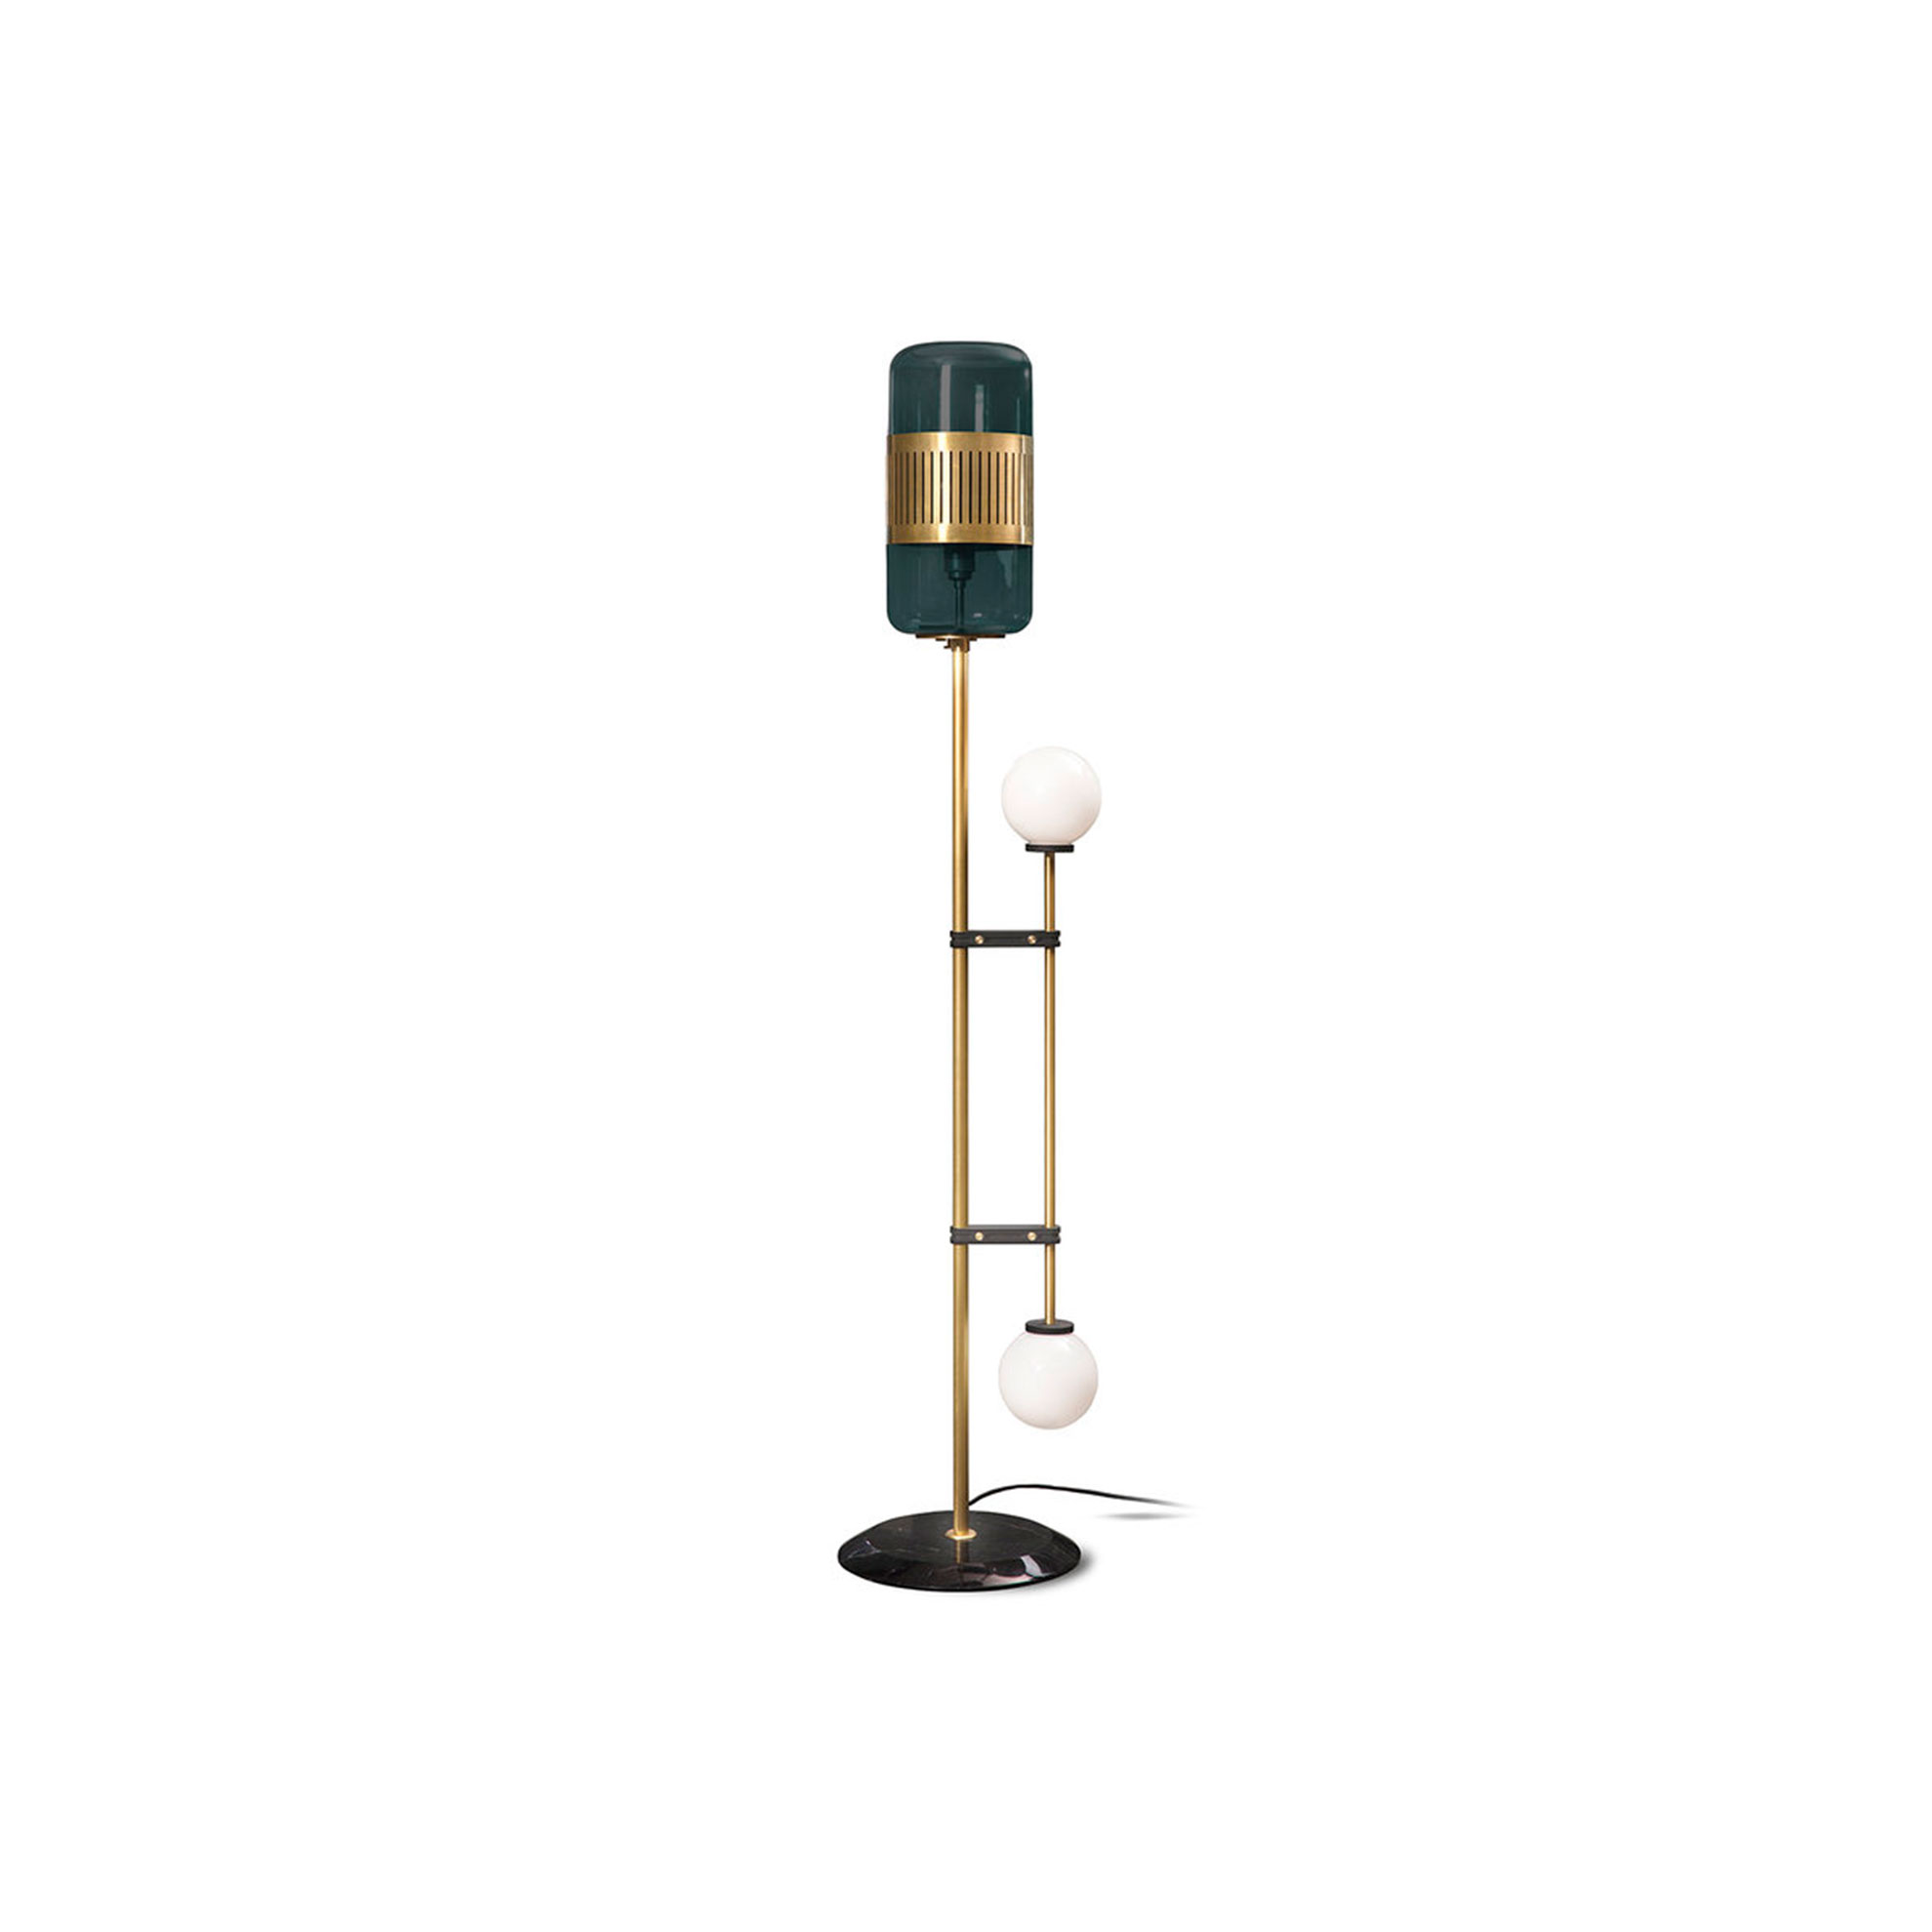 Lizak Floor Lamp - Sophisticated yet unexpected, the Lizak floor lamp juxtaposes cylindrical glass shades with opalescent globes on linear brass arms. Grounded with a solid white marble base, it offers a beguiling play on contrast and will lend elegance to any room.    | Matter of Stuff